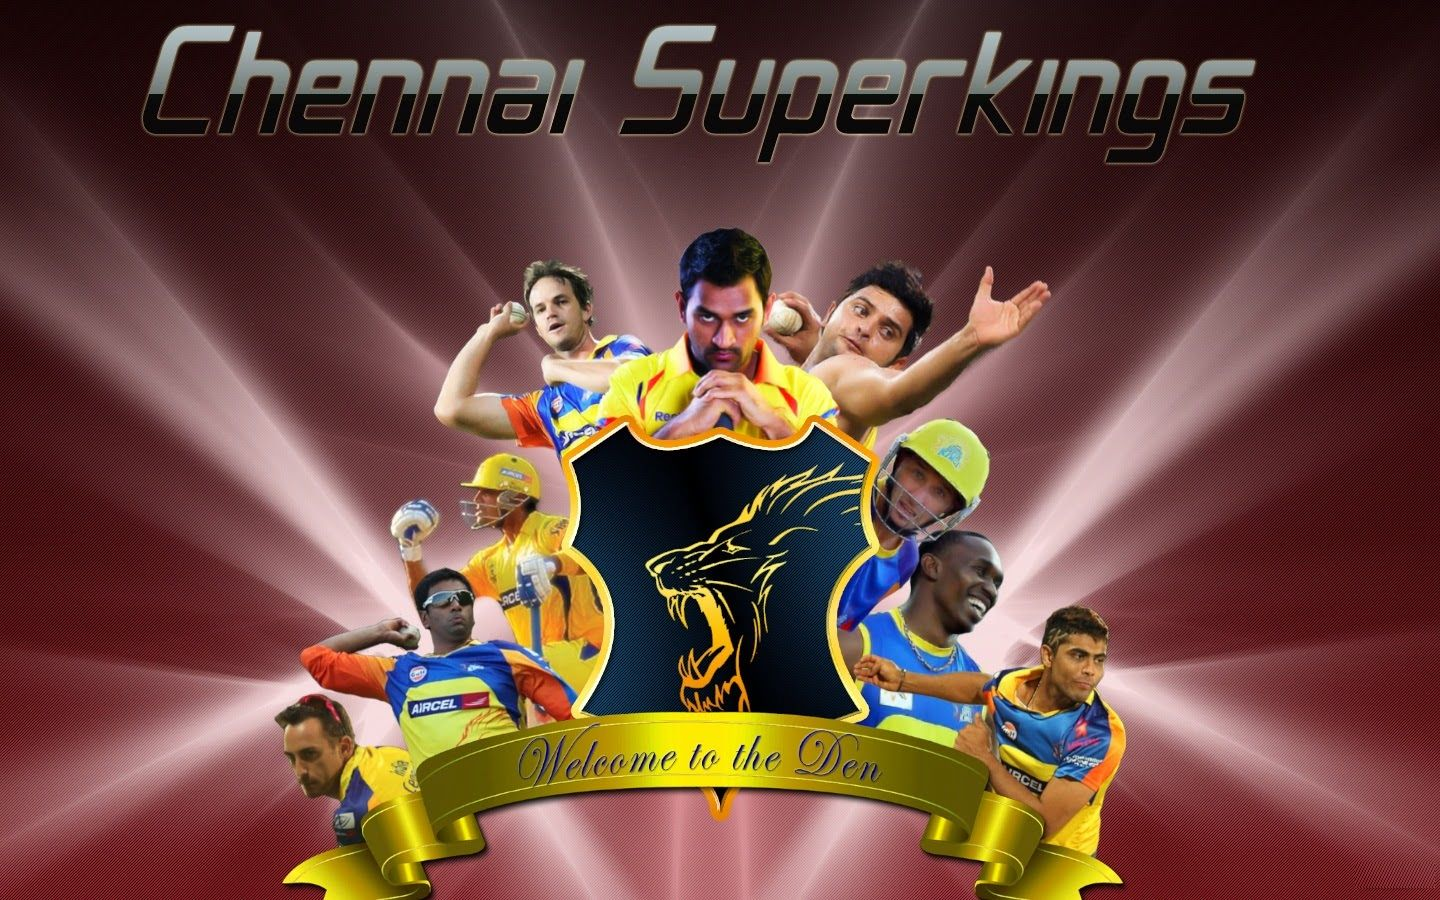 Chennai Super Kings 2015 Ipl Wallpapers Hd Download Csk